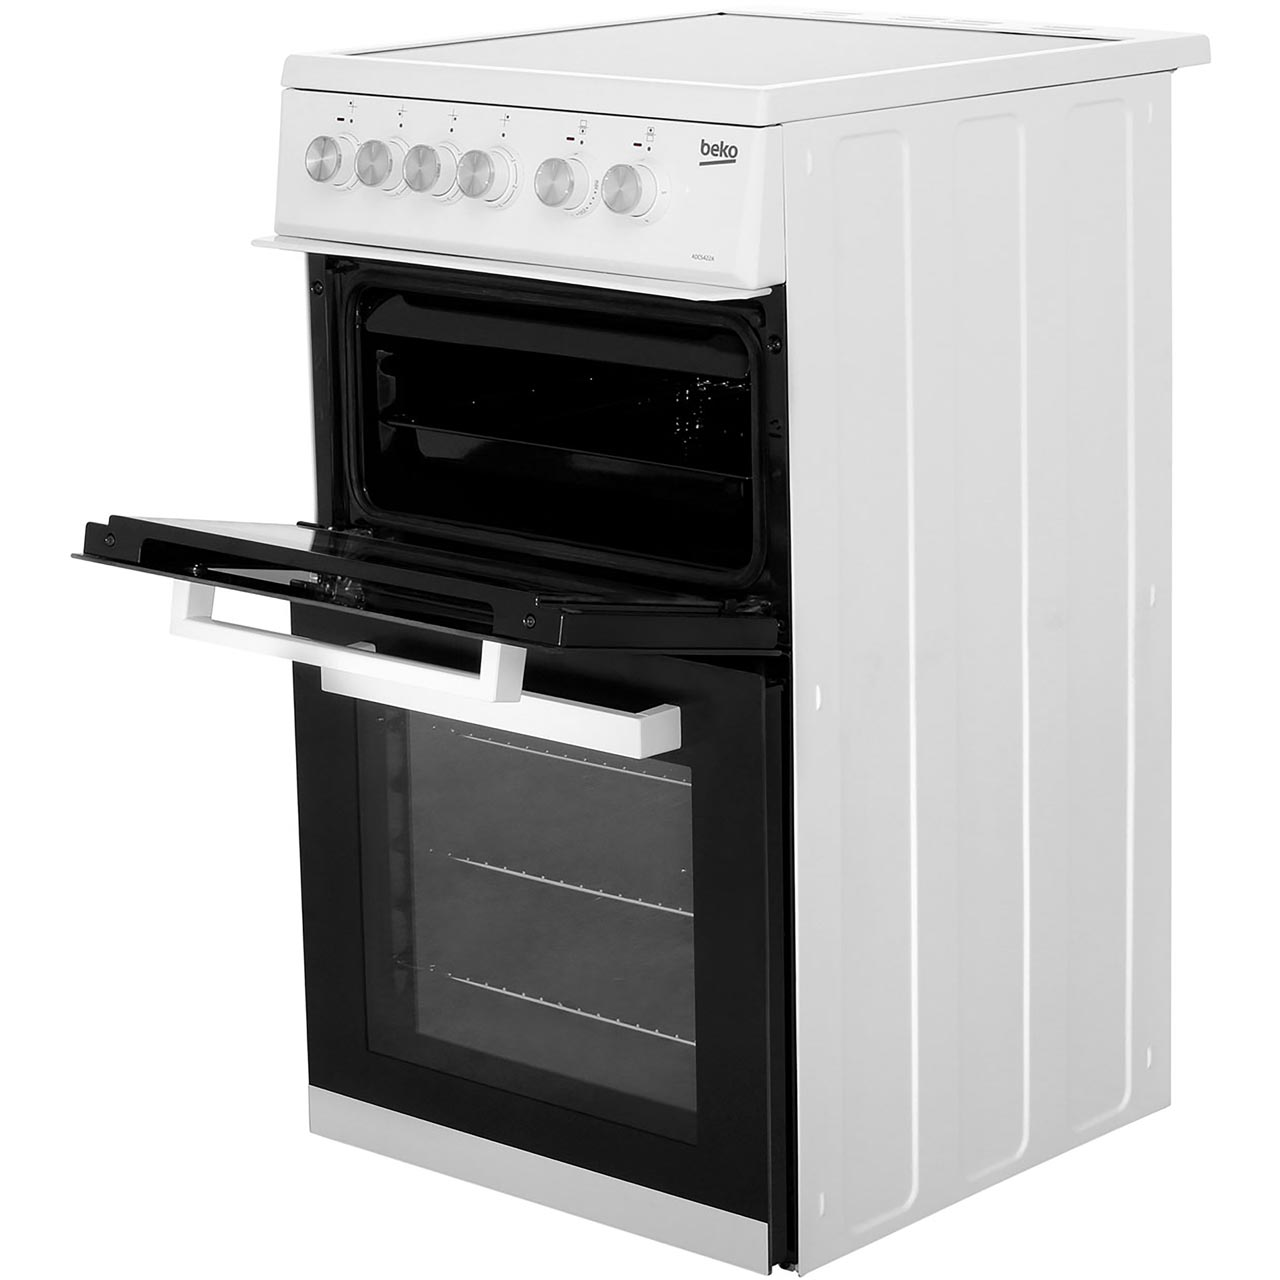 Beko Bdc5422aw Freestanding Electric Cooker White